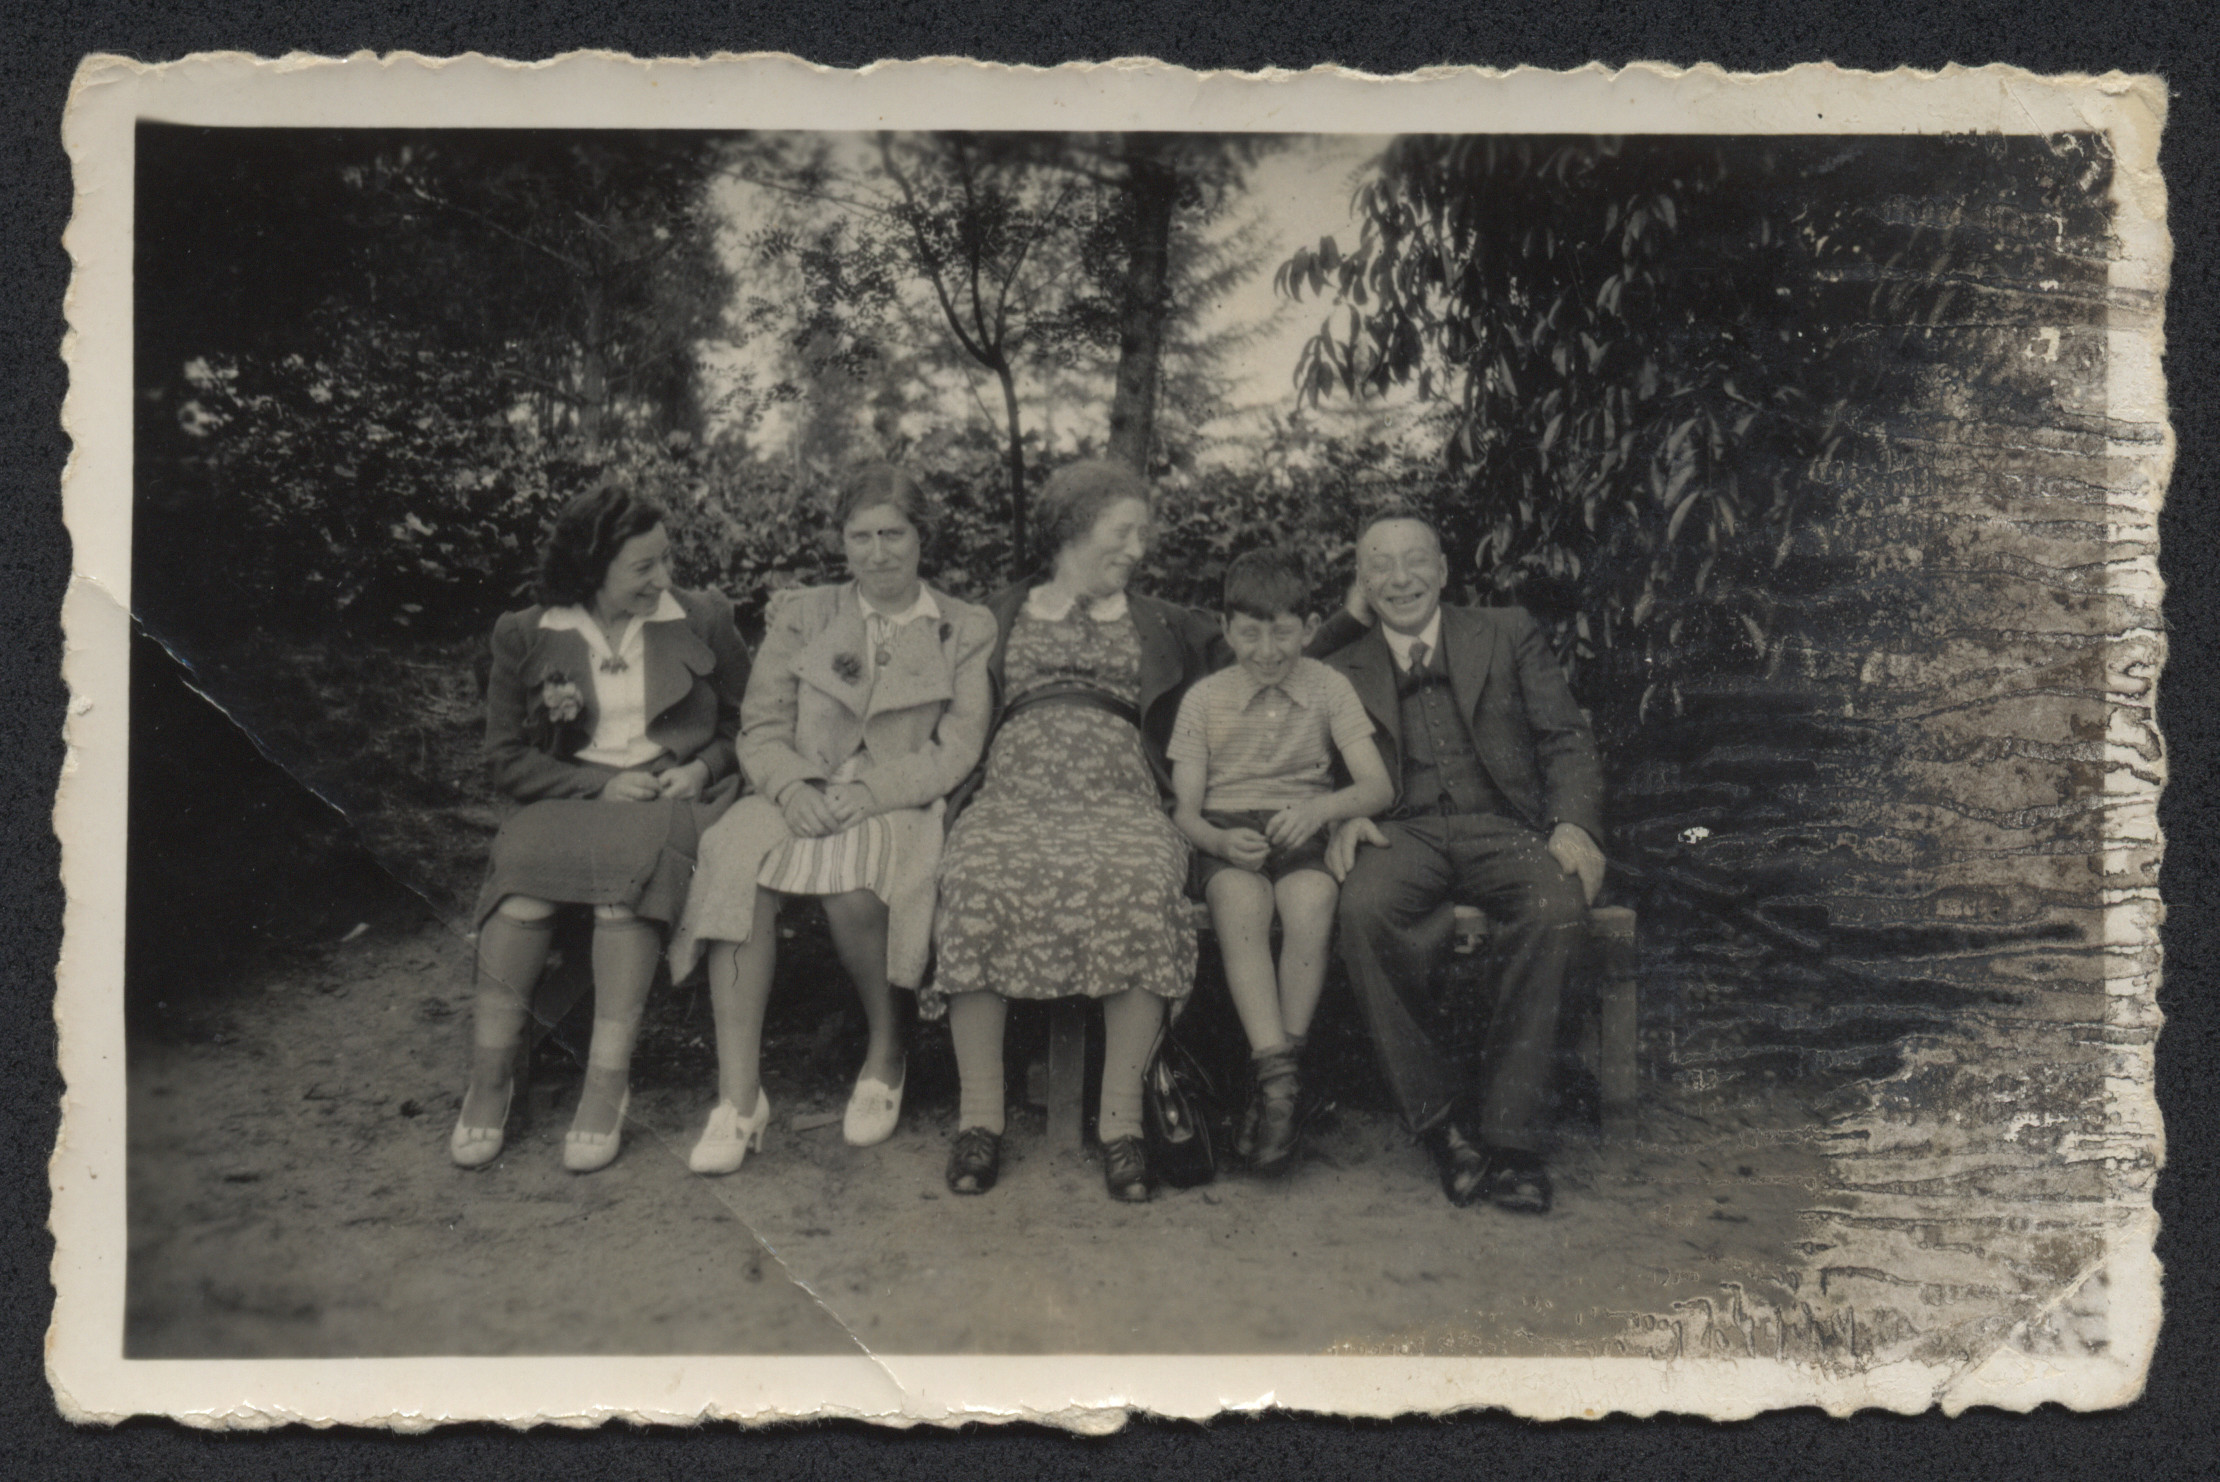 """A Jewish family sits on a park bench before the war.  Pictured are Engeline [?], [unknown], Froukje, Louis, and Siemon Moses.  The inscription on the back reads, """"Ind Leusden Augustus 1939 vacantie.""""  (In Leusden, August 1939, vacation.)"""